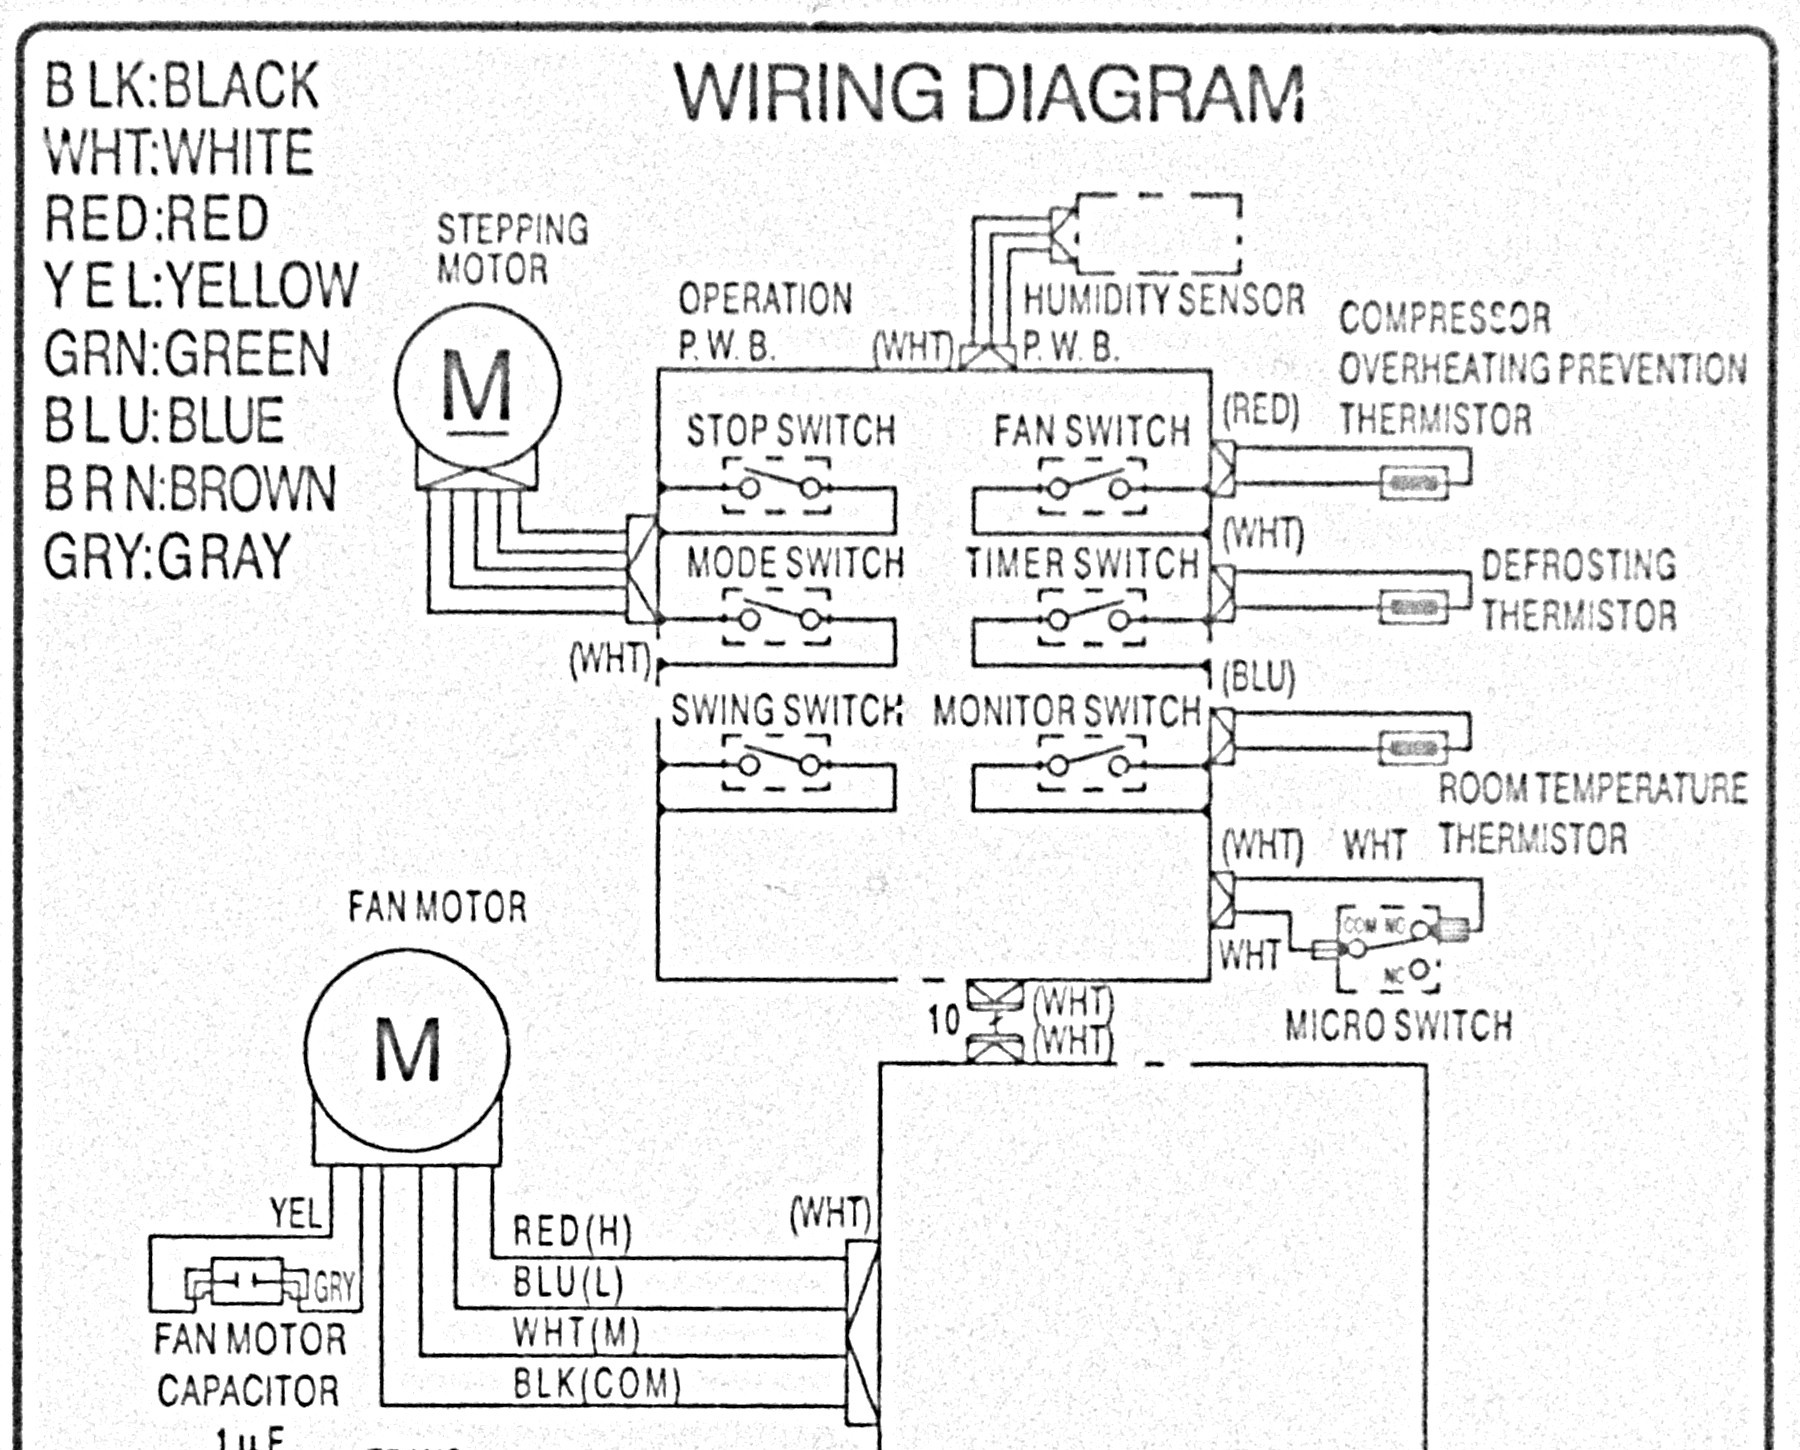 Line Art Photography Cleanup Whitequarks Lab Notebook Motor Thermistor Wiring Diagram The Source Picture Is A Photograph Of Schematics Printed On An Adhesive Film And Applied To Curved Surface Appliance Made From Glossy Gray